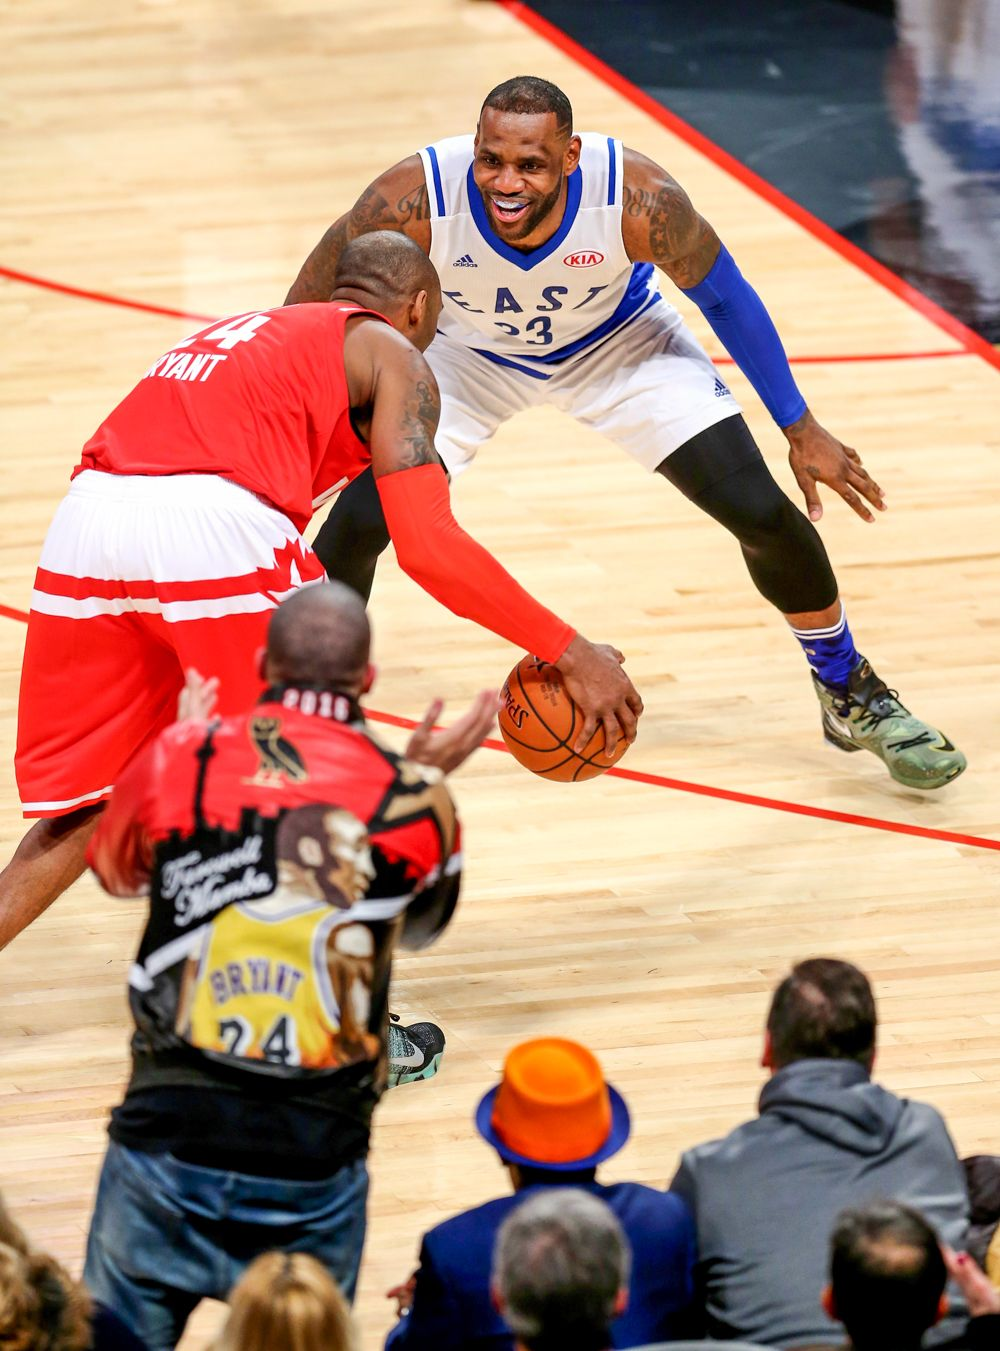 cb5bf535963 LeBron James and Kobe Bryant : Exciting photos from the 65th NBA All-Star  Game